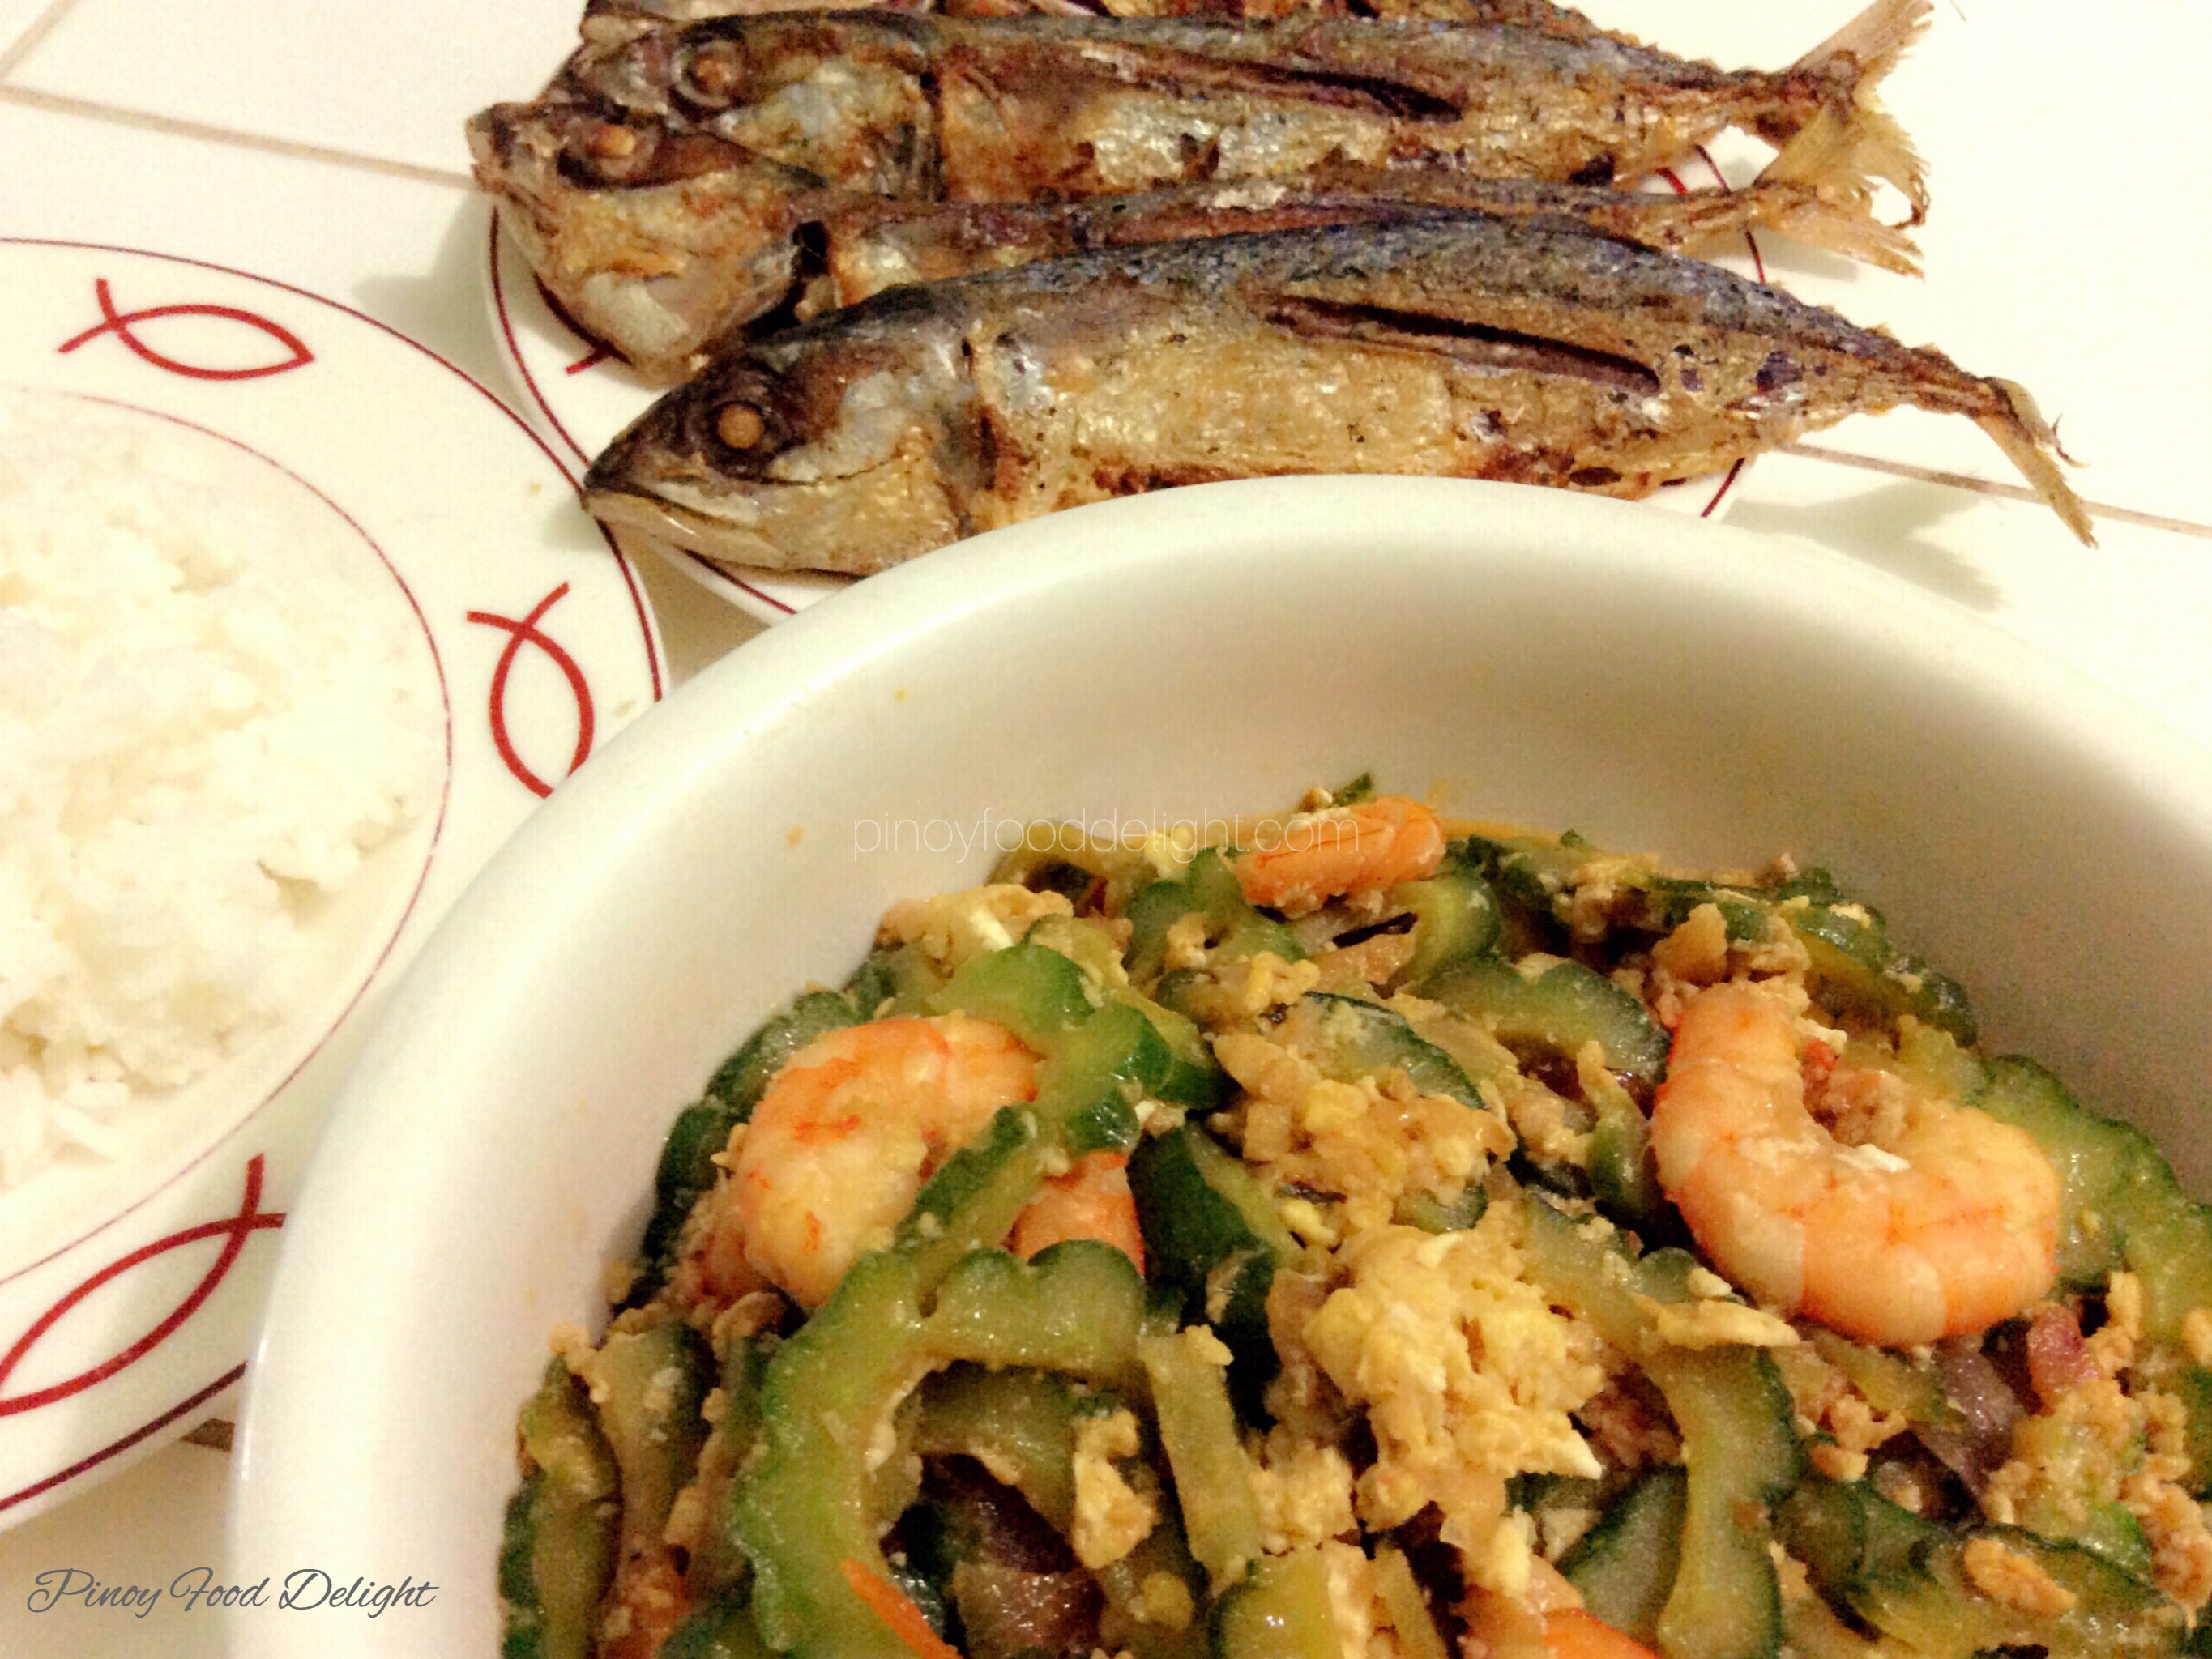 PINOY FOOD DELIGHT COMBO 16 | Pinoy Food Delight